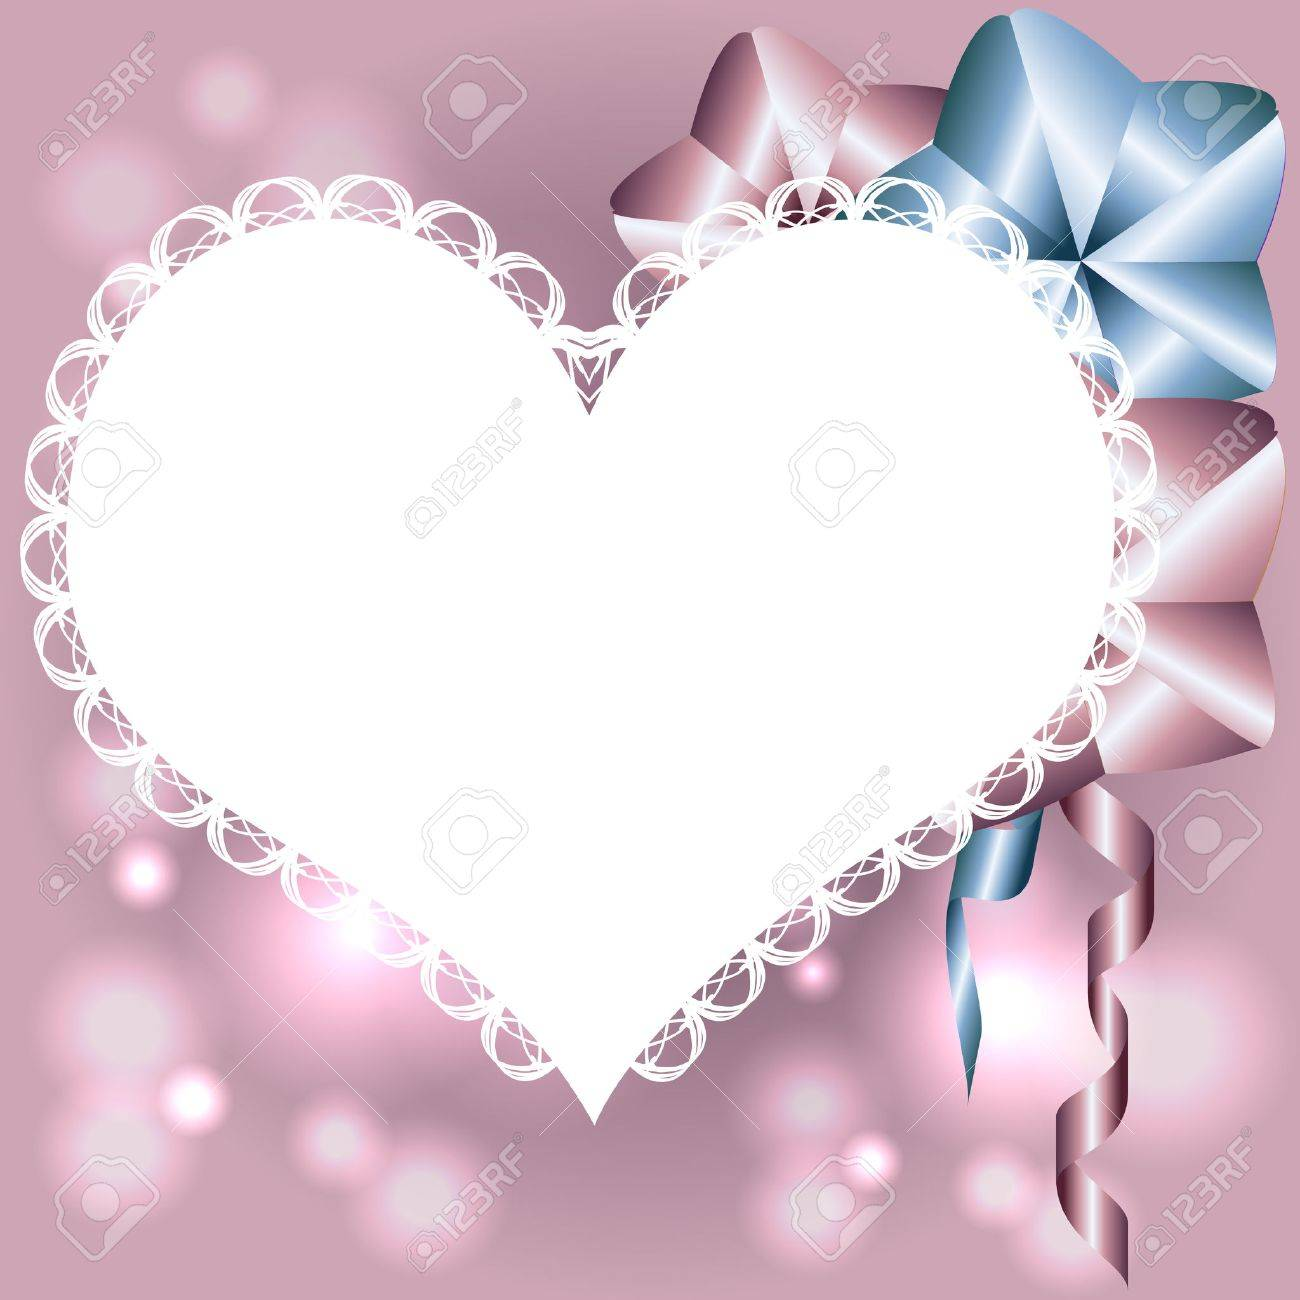 template for birthday card invitation valentine card with heart